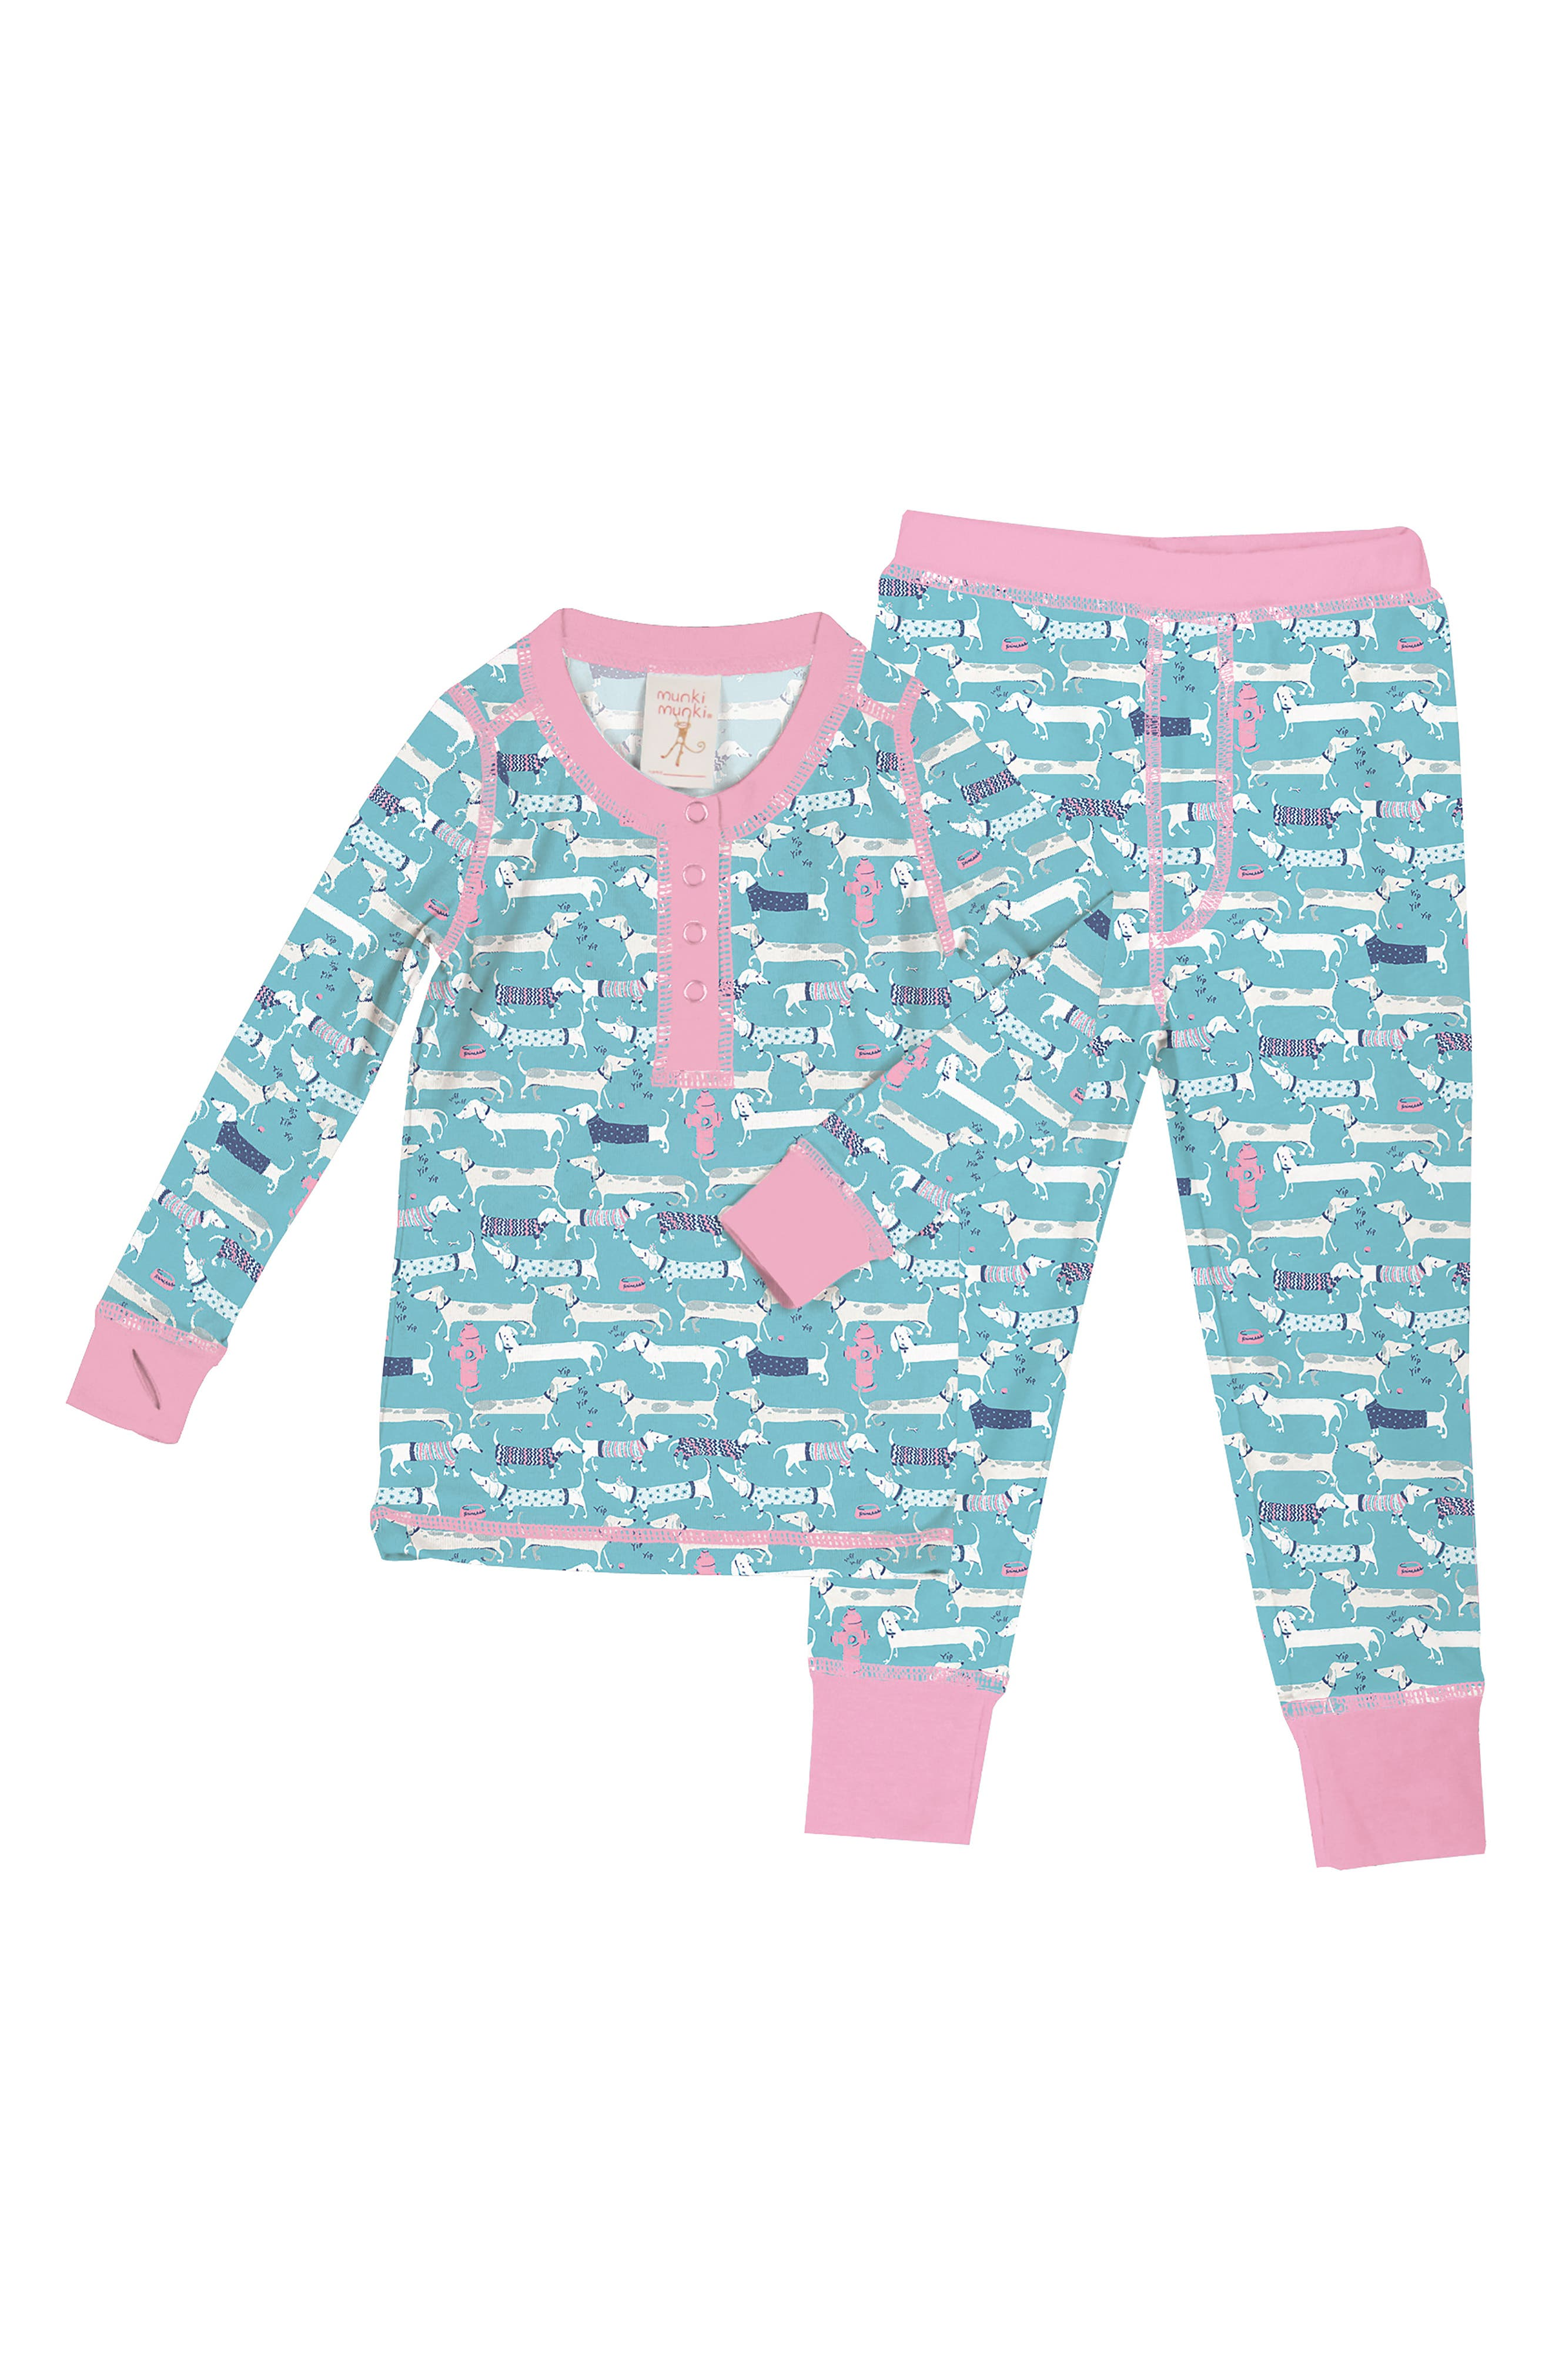 MUNKI MUNKI Sweater Dogs Fitted Two-Piece Pajamas, Main, color, BLUE